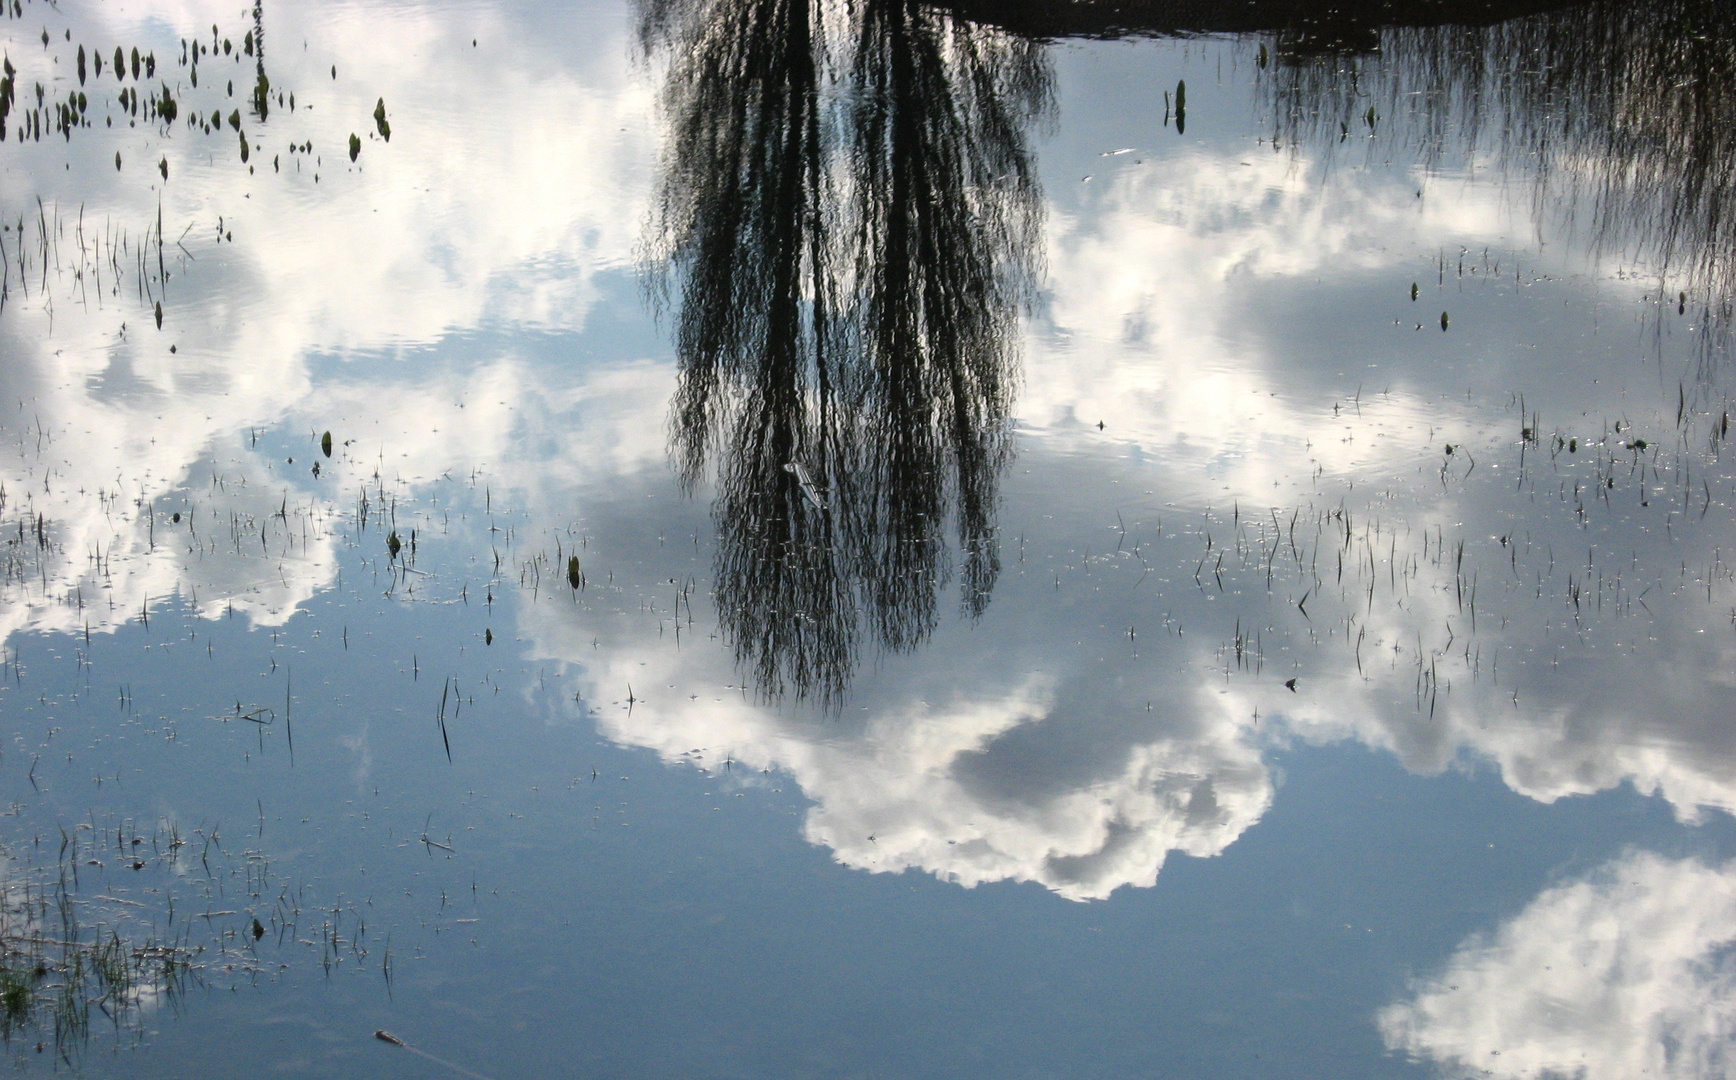 The sky in the water